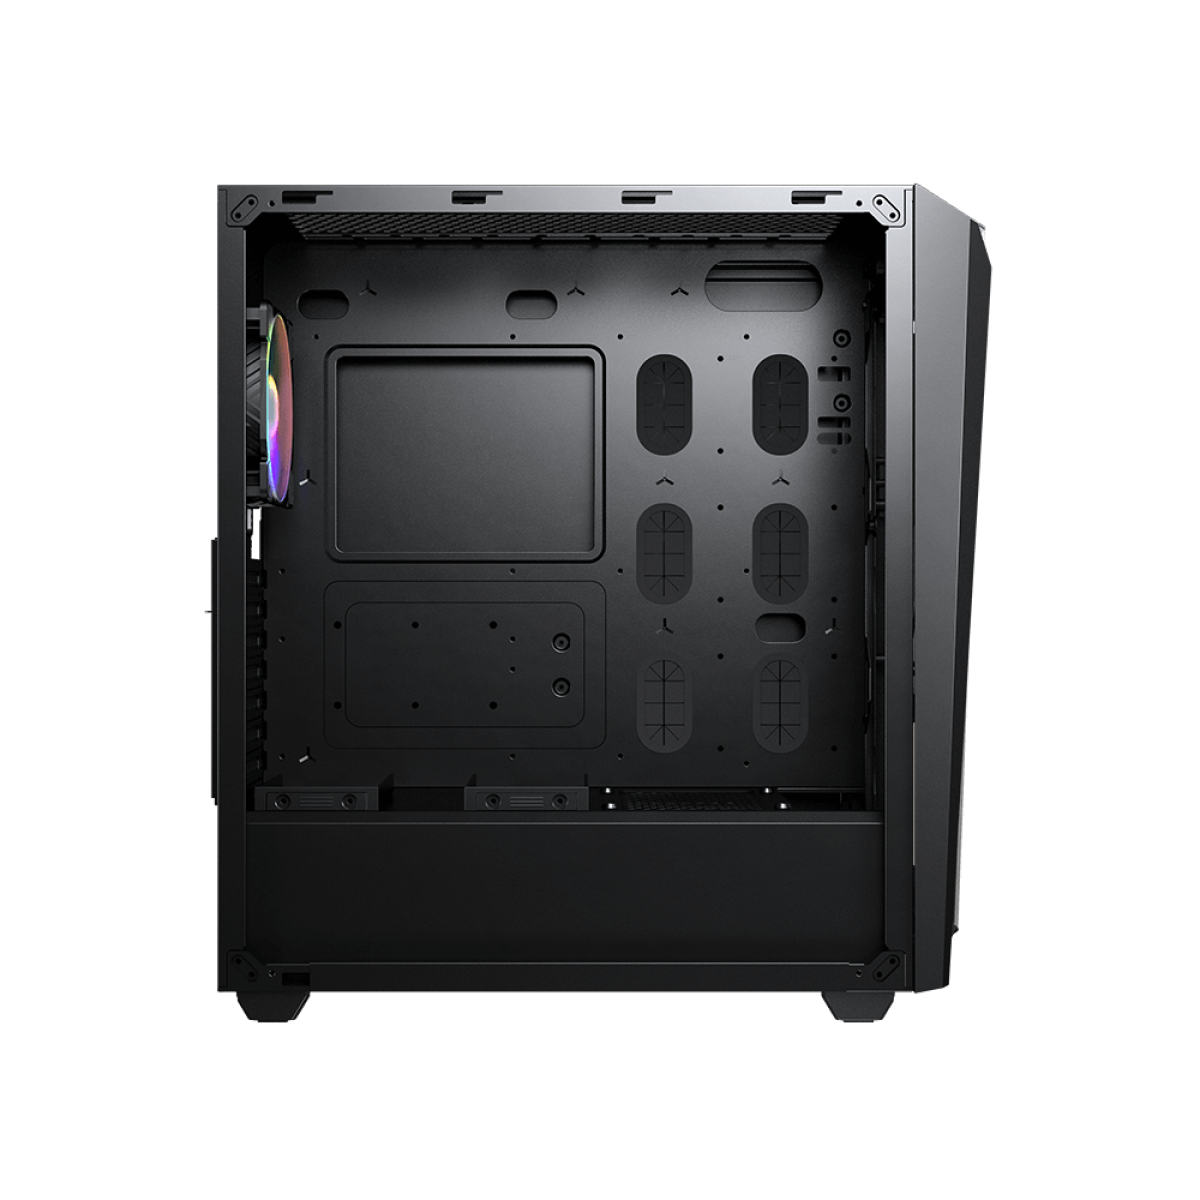 Gabinete Gamer Cougar, MX660-T, Mid Tower, Vidro Temperado, Black, Com 1 Fan, Sem Fonte, 385BMS0.0002